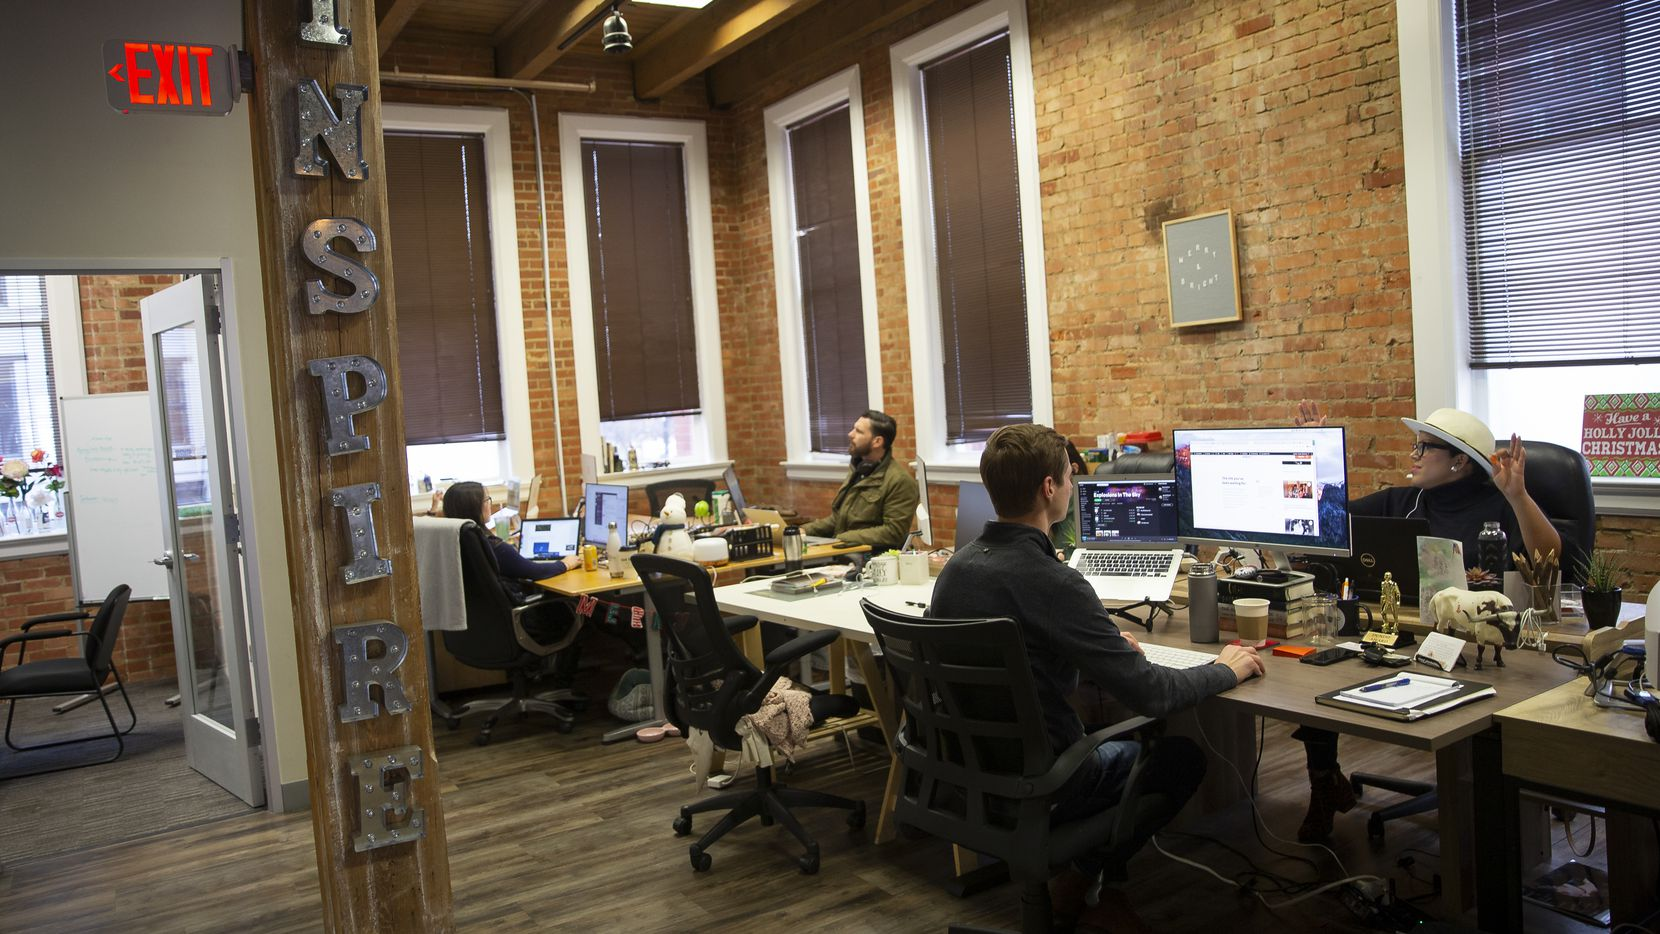 The InspireMore's West End open concept office space on Dec. 16, 2019 in Dallas. (Juan Figueroa/The Dallas Morning News)